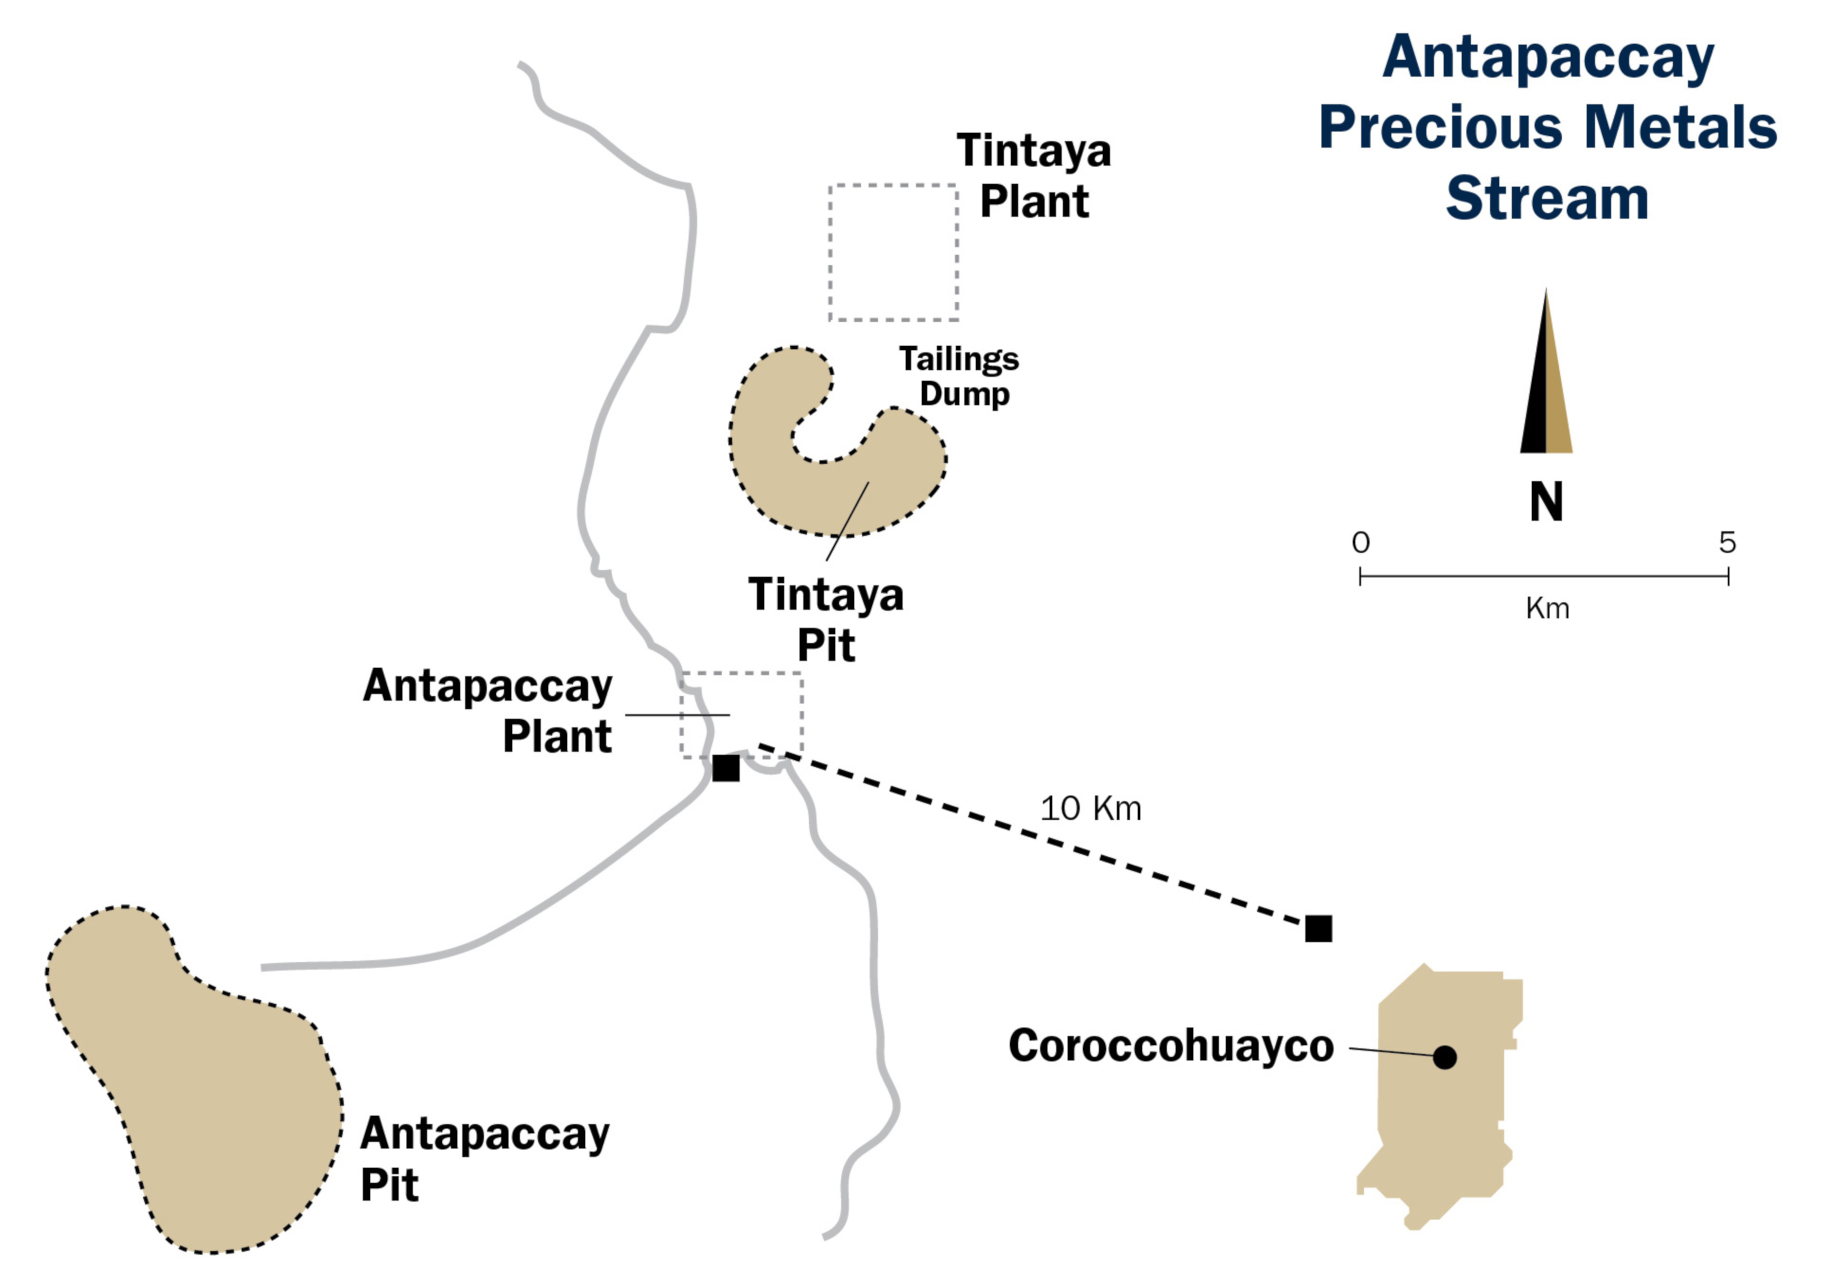 AntapaccaySite